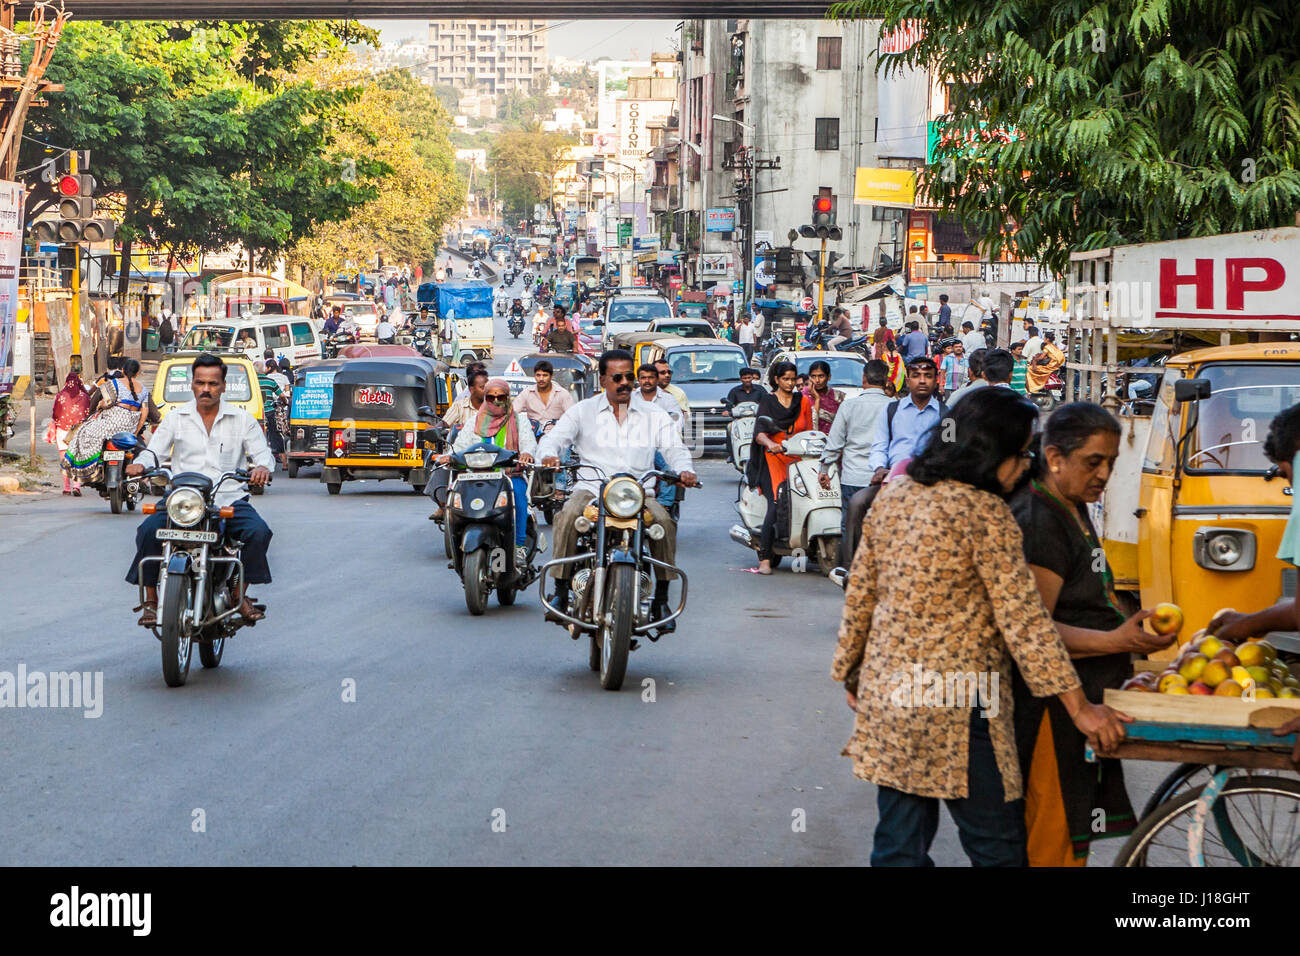 A street scene in Pune, India. - Stock Image